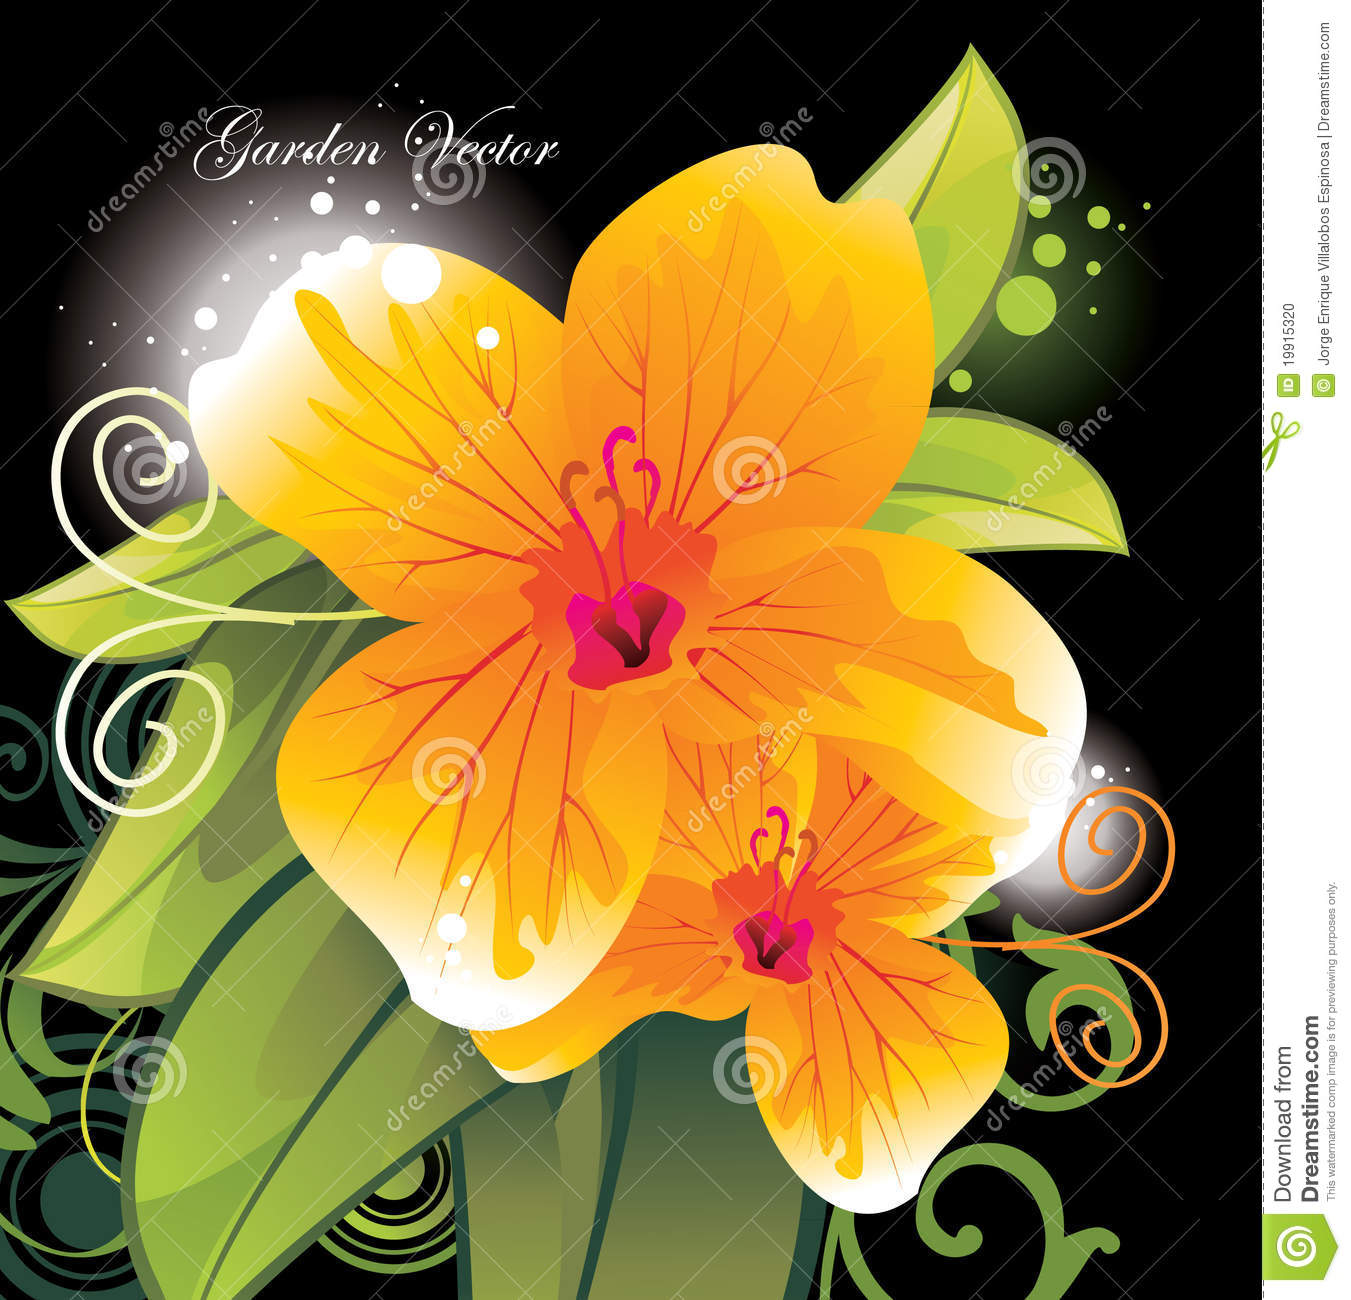 Beauty flower close up stock vector. Illustration of natural - 19915320